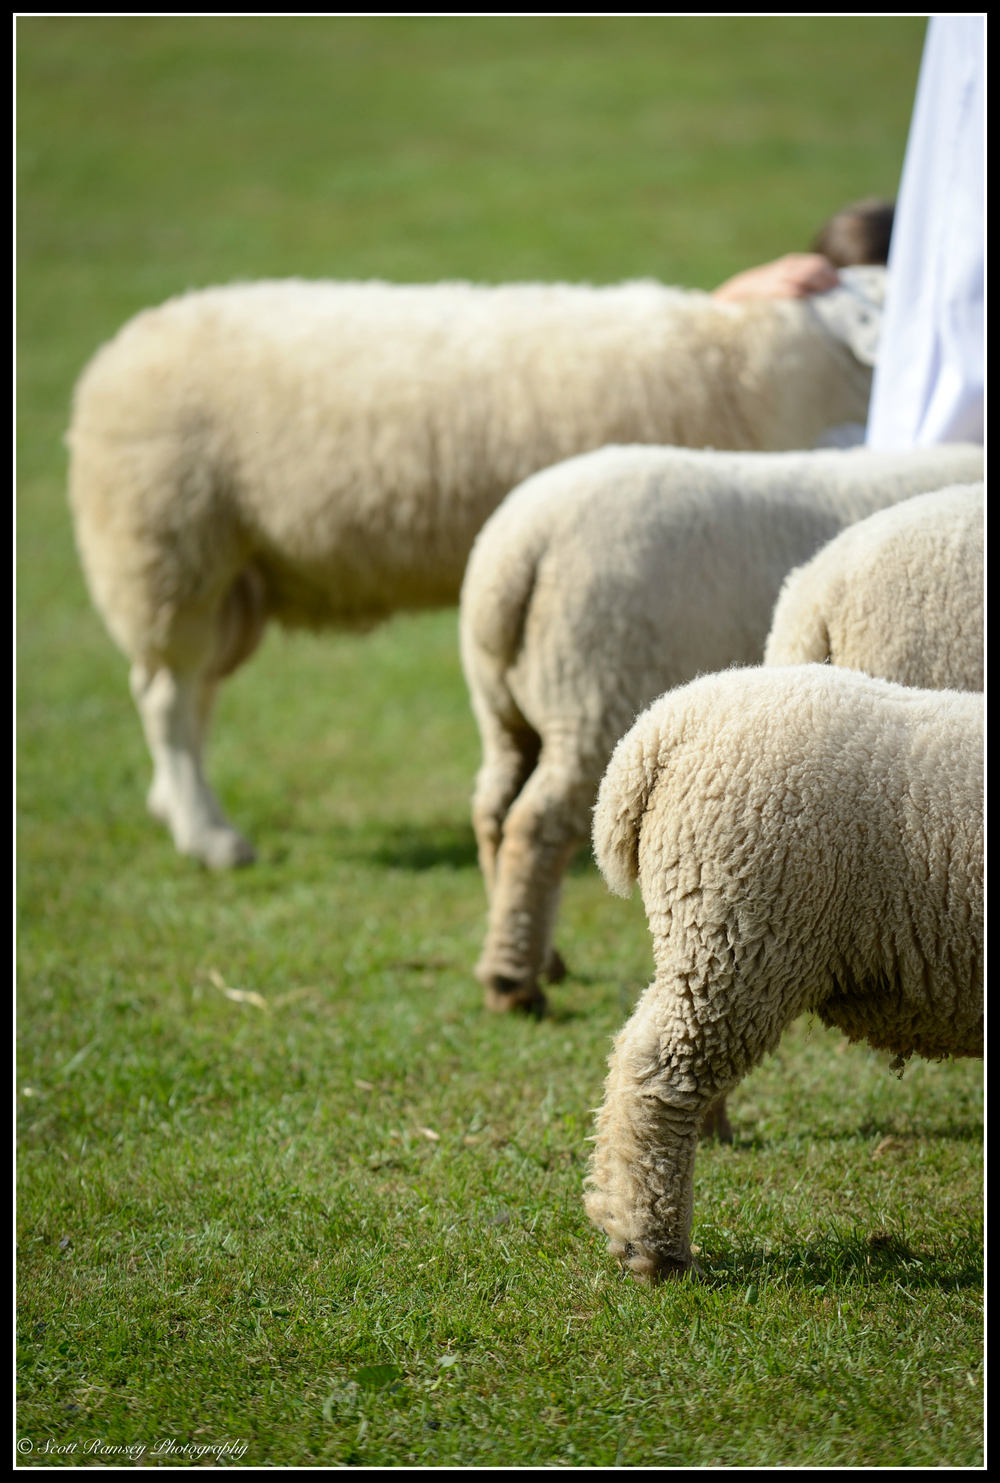 Sheep lined up in the main arena whist being judged at the Findon Sheep Fair in West Sussex.